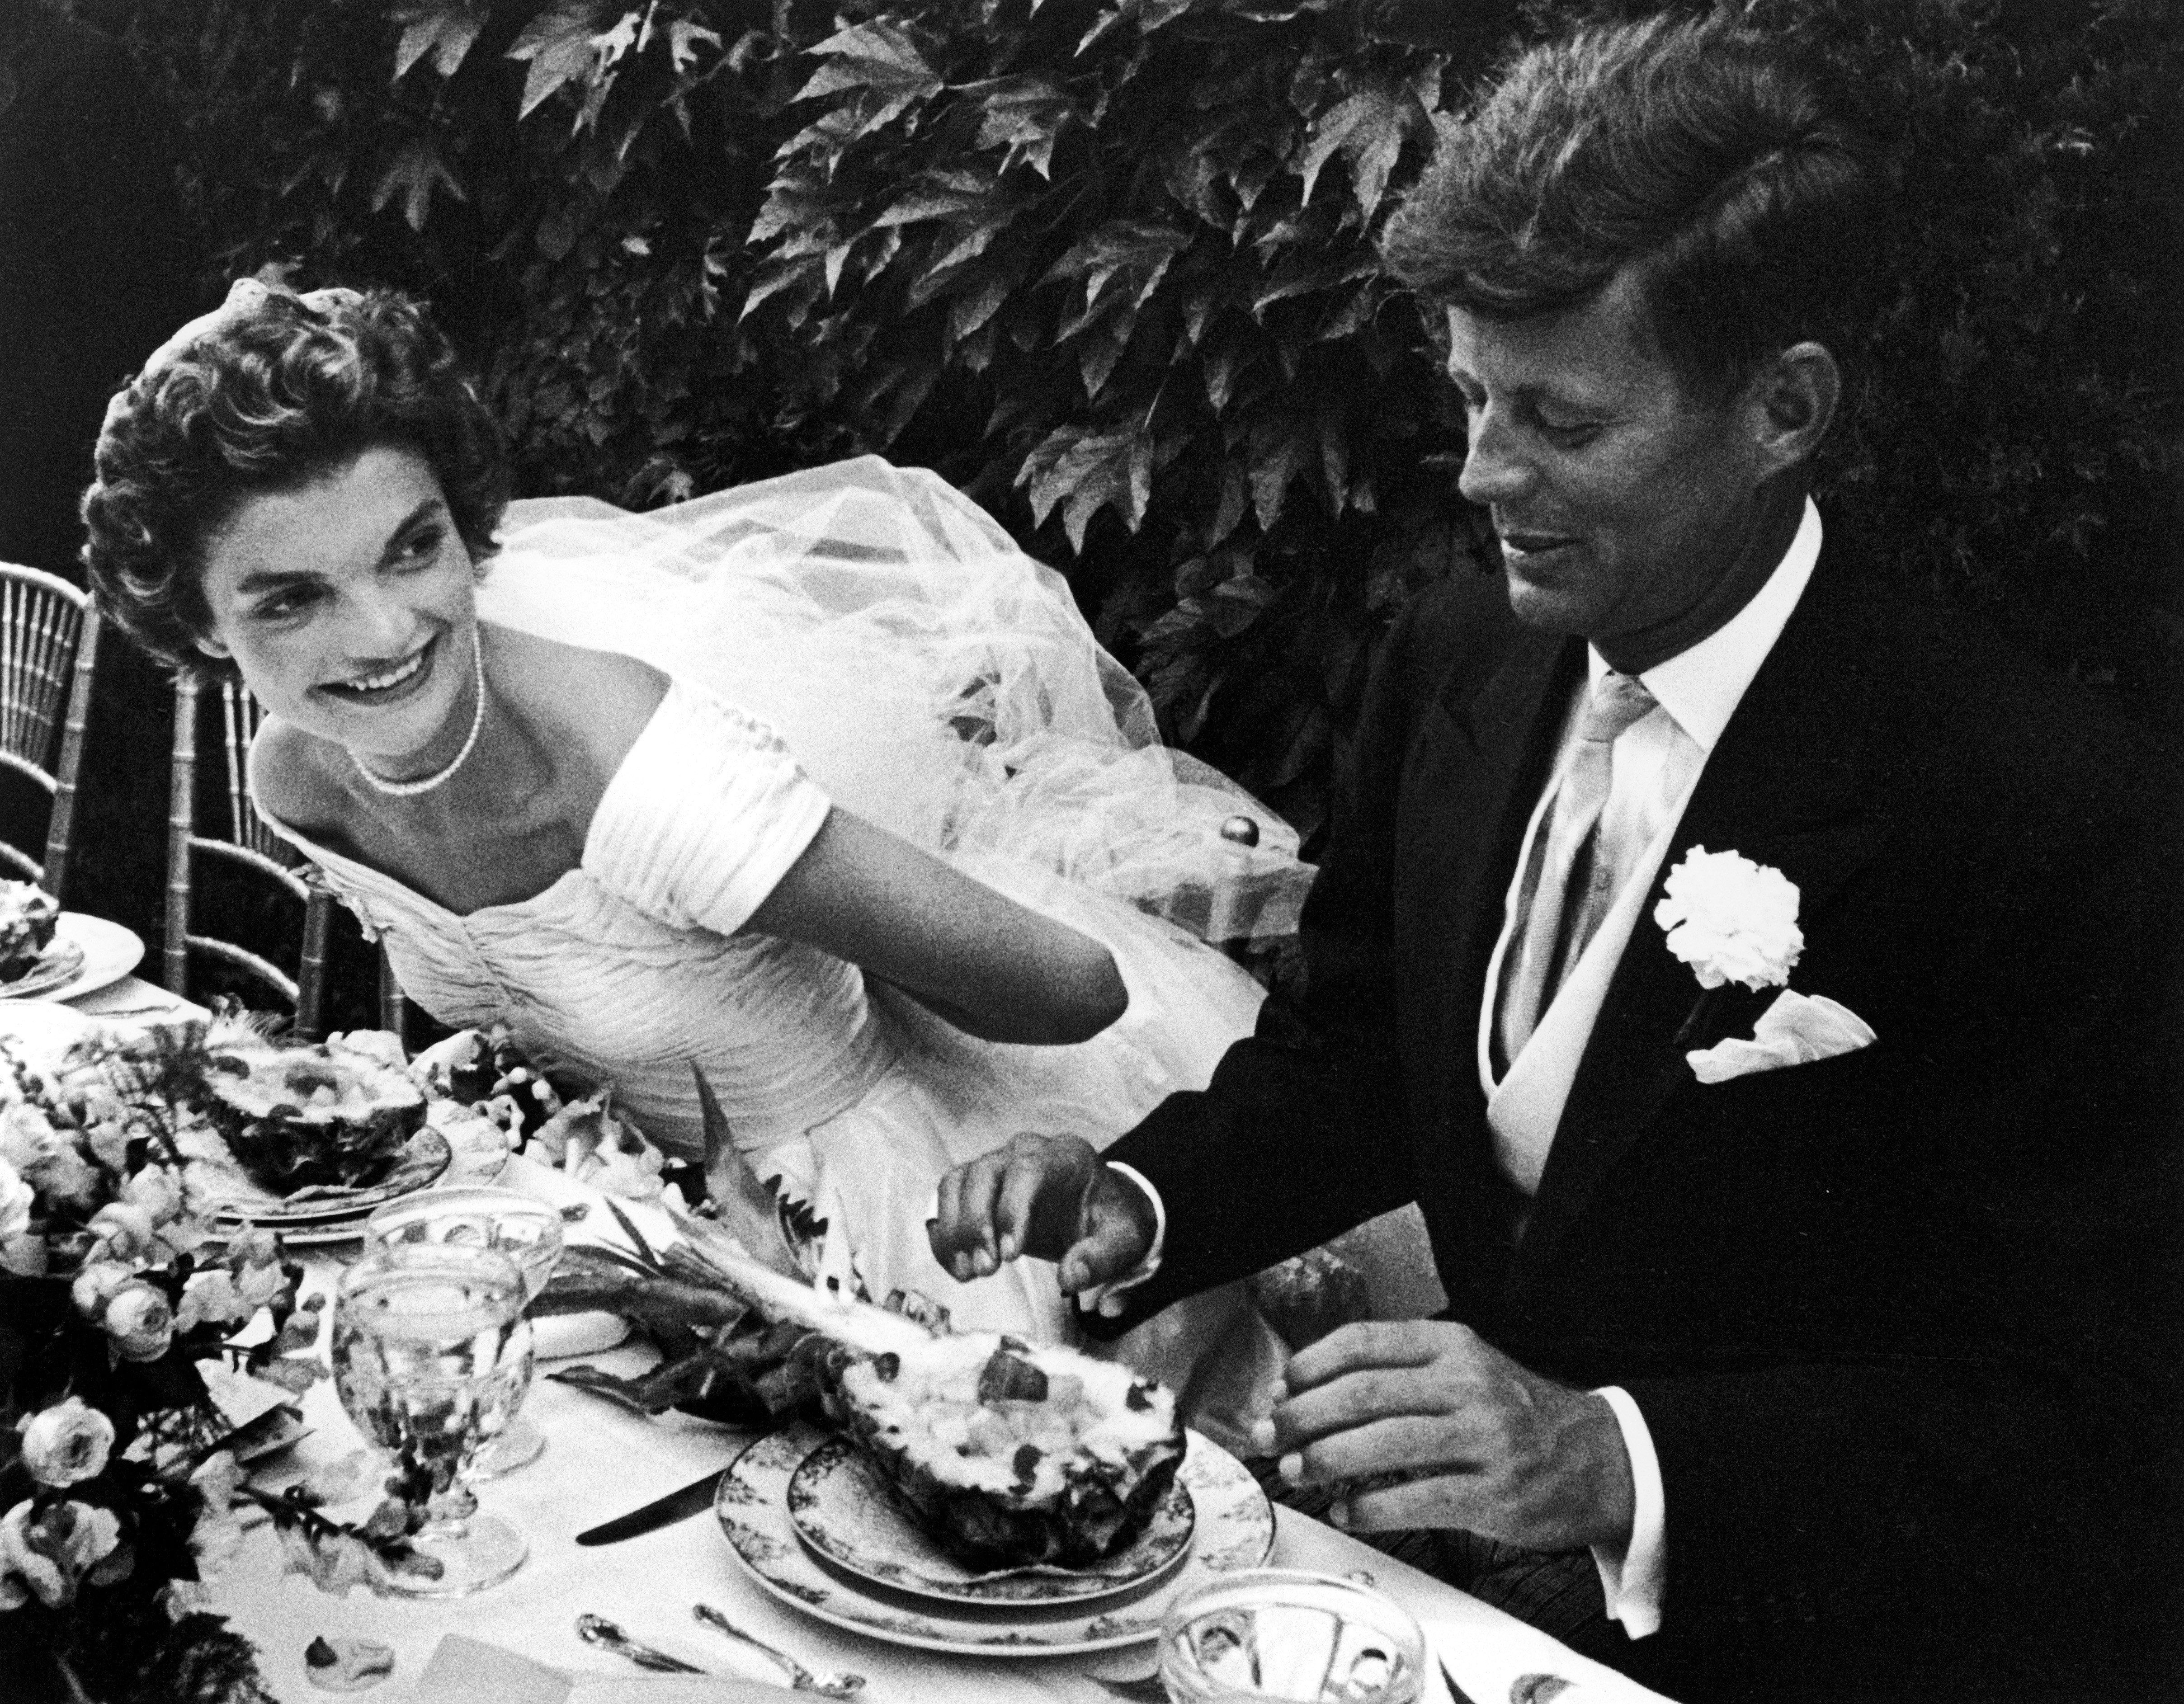 Senator John Kennedy and bride Jacqueline sitting together outdoors at table, eating pineapple salad, at their wedding recept